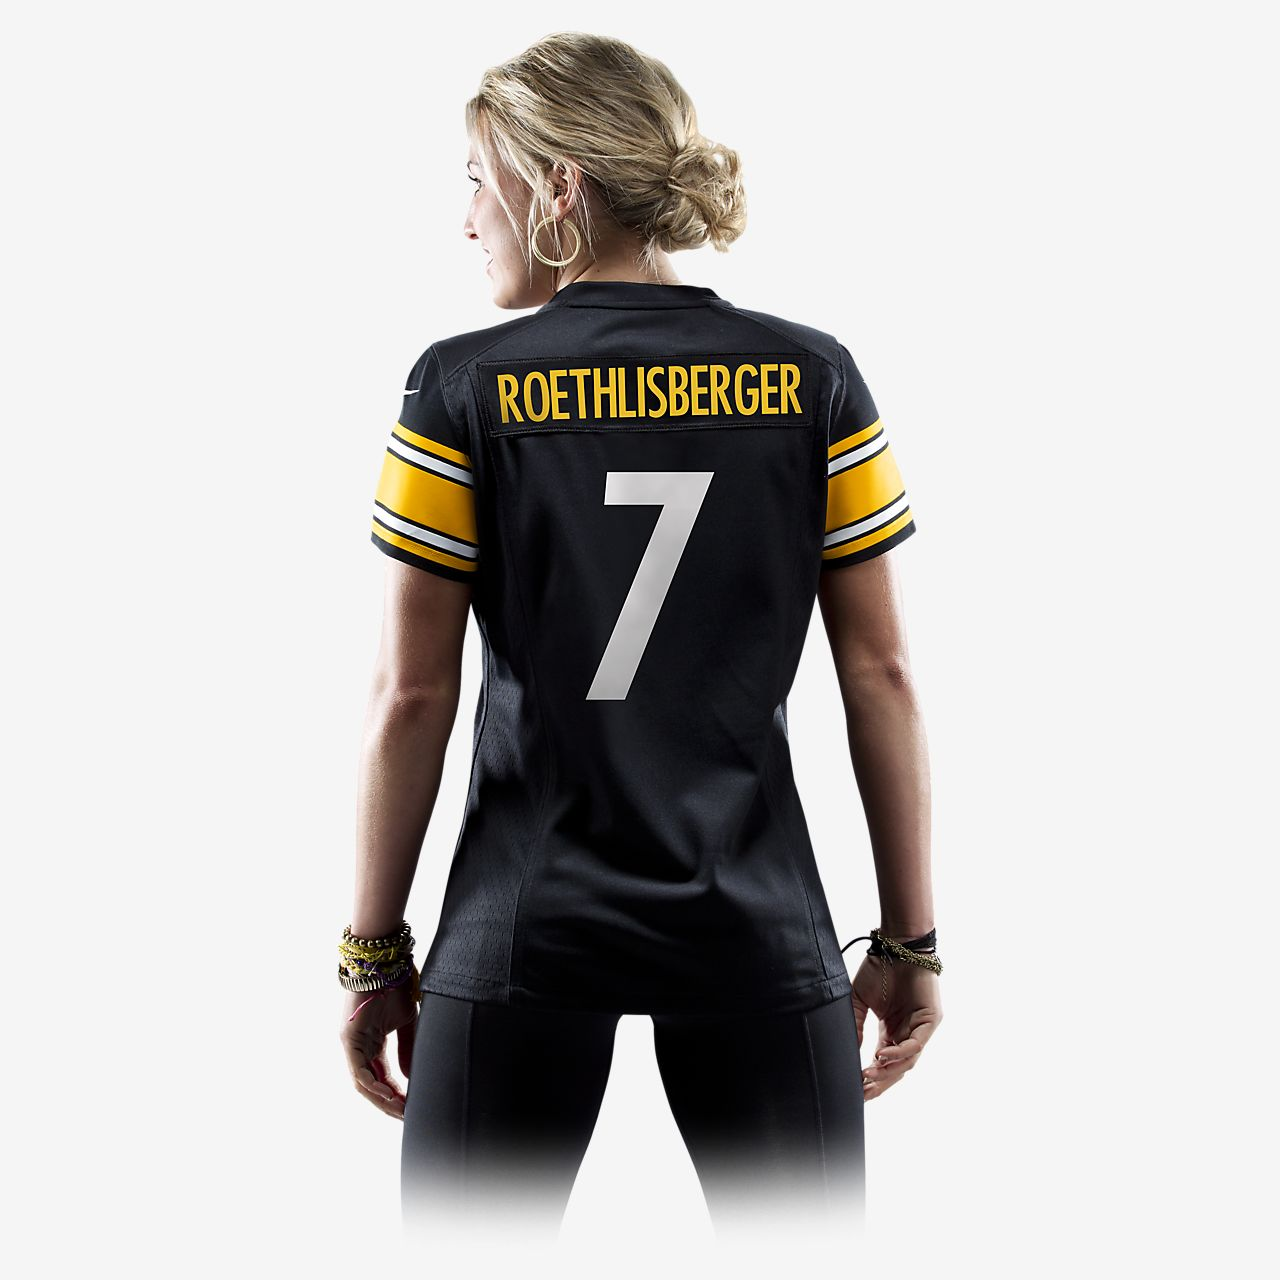 0efcf0a6607 ... NFL Pittsburgh Steelers (Ben Roethlisberger) Women s Football Home Game  Jersey